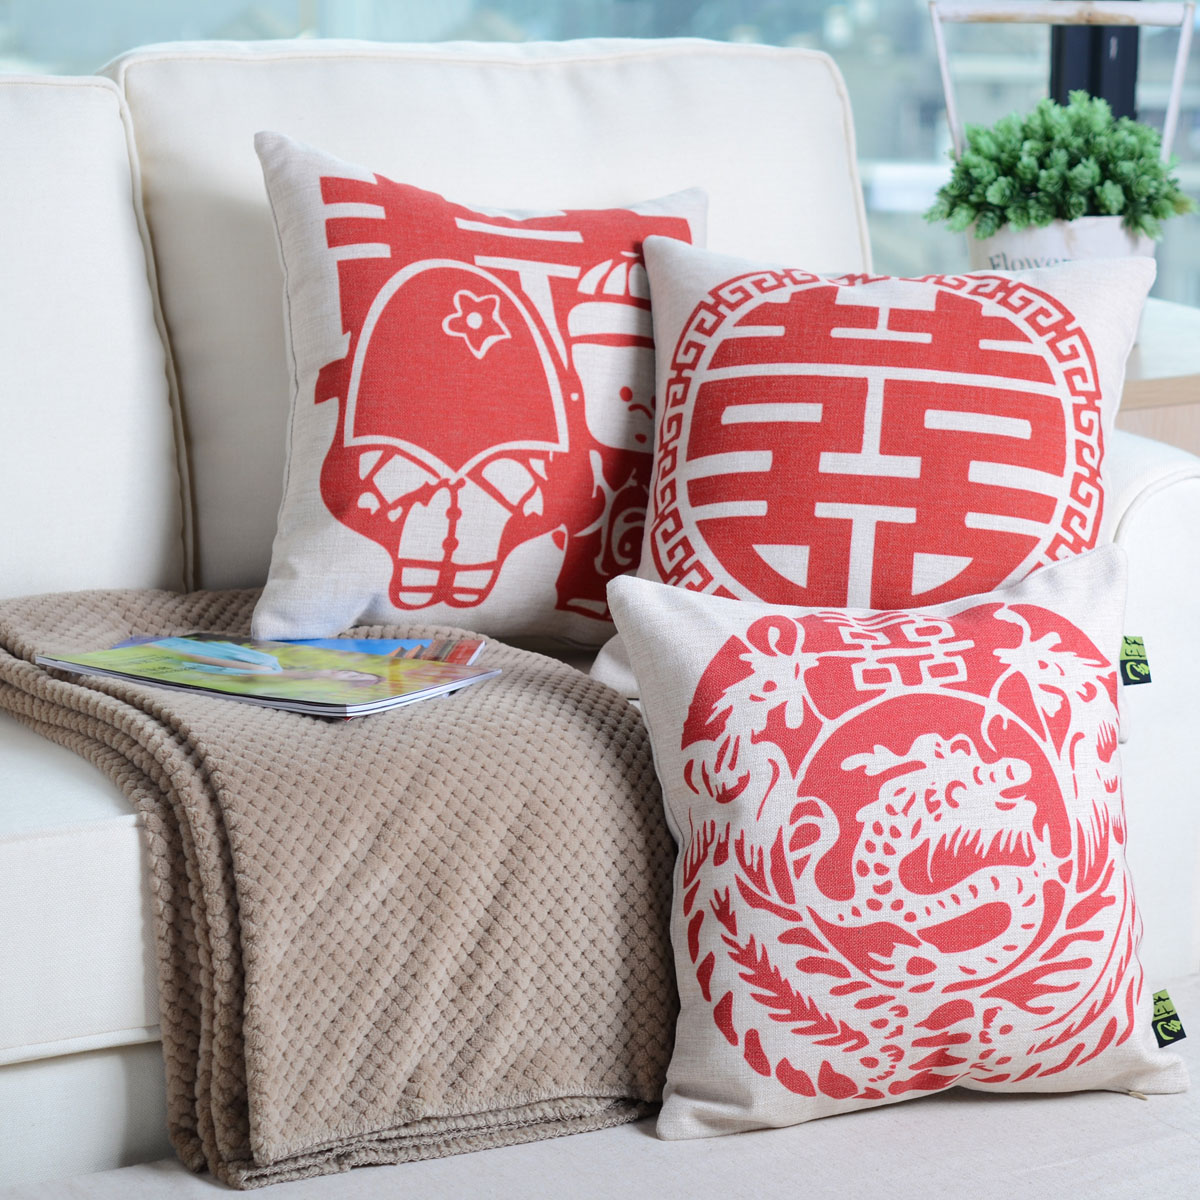 China Sister Pillow Gift, China Sister Pillow Gift Shopping Guide at ...